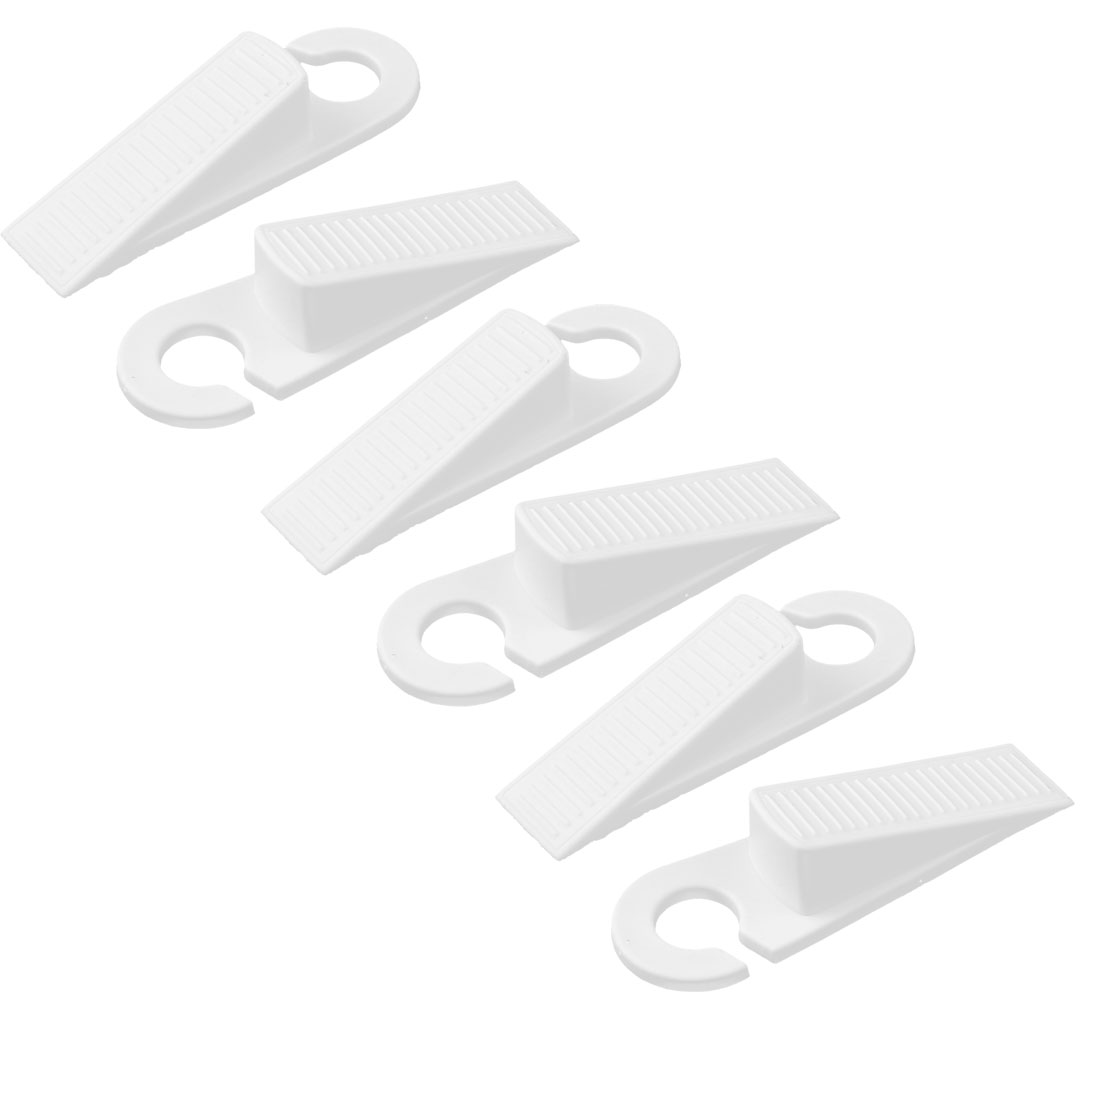 Home Office Floor Rubber Anti-slip Door Stopper Guard Protector White 3 Pairs